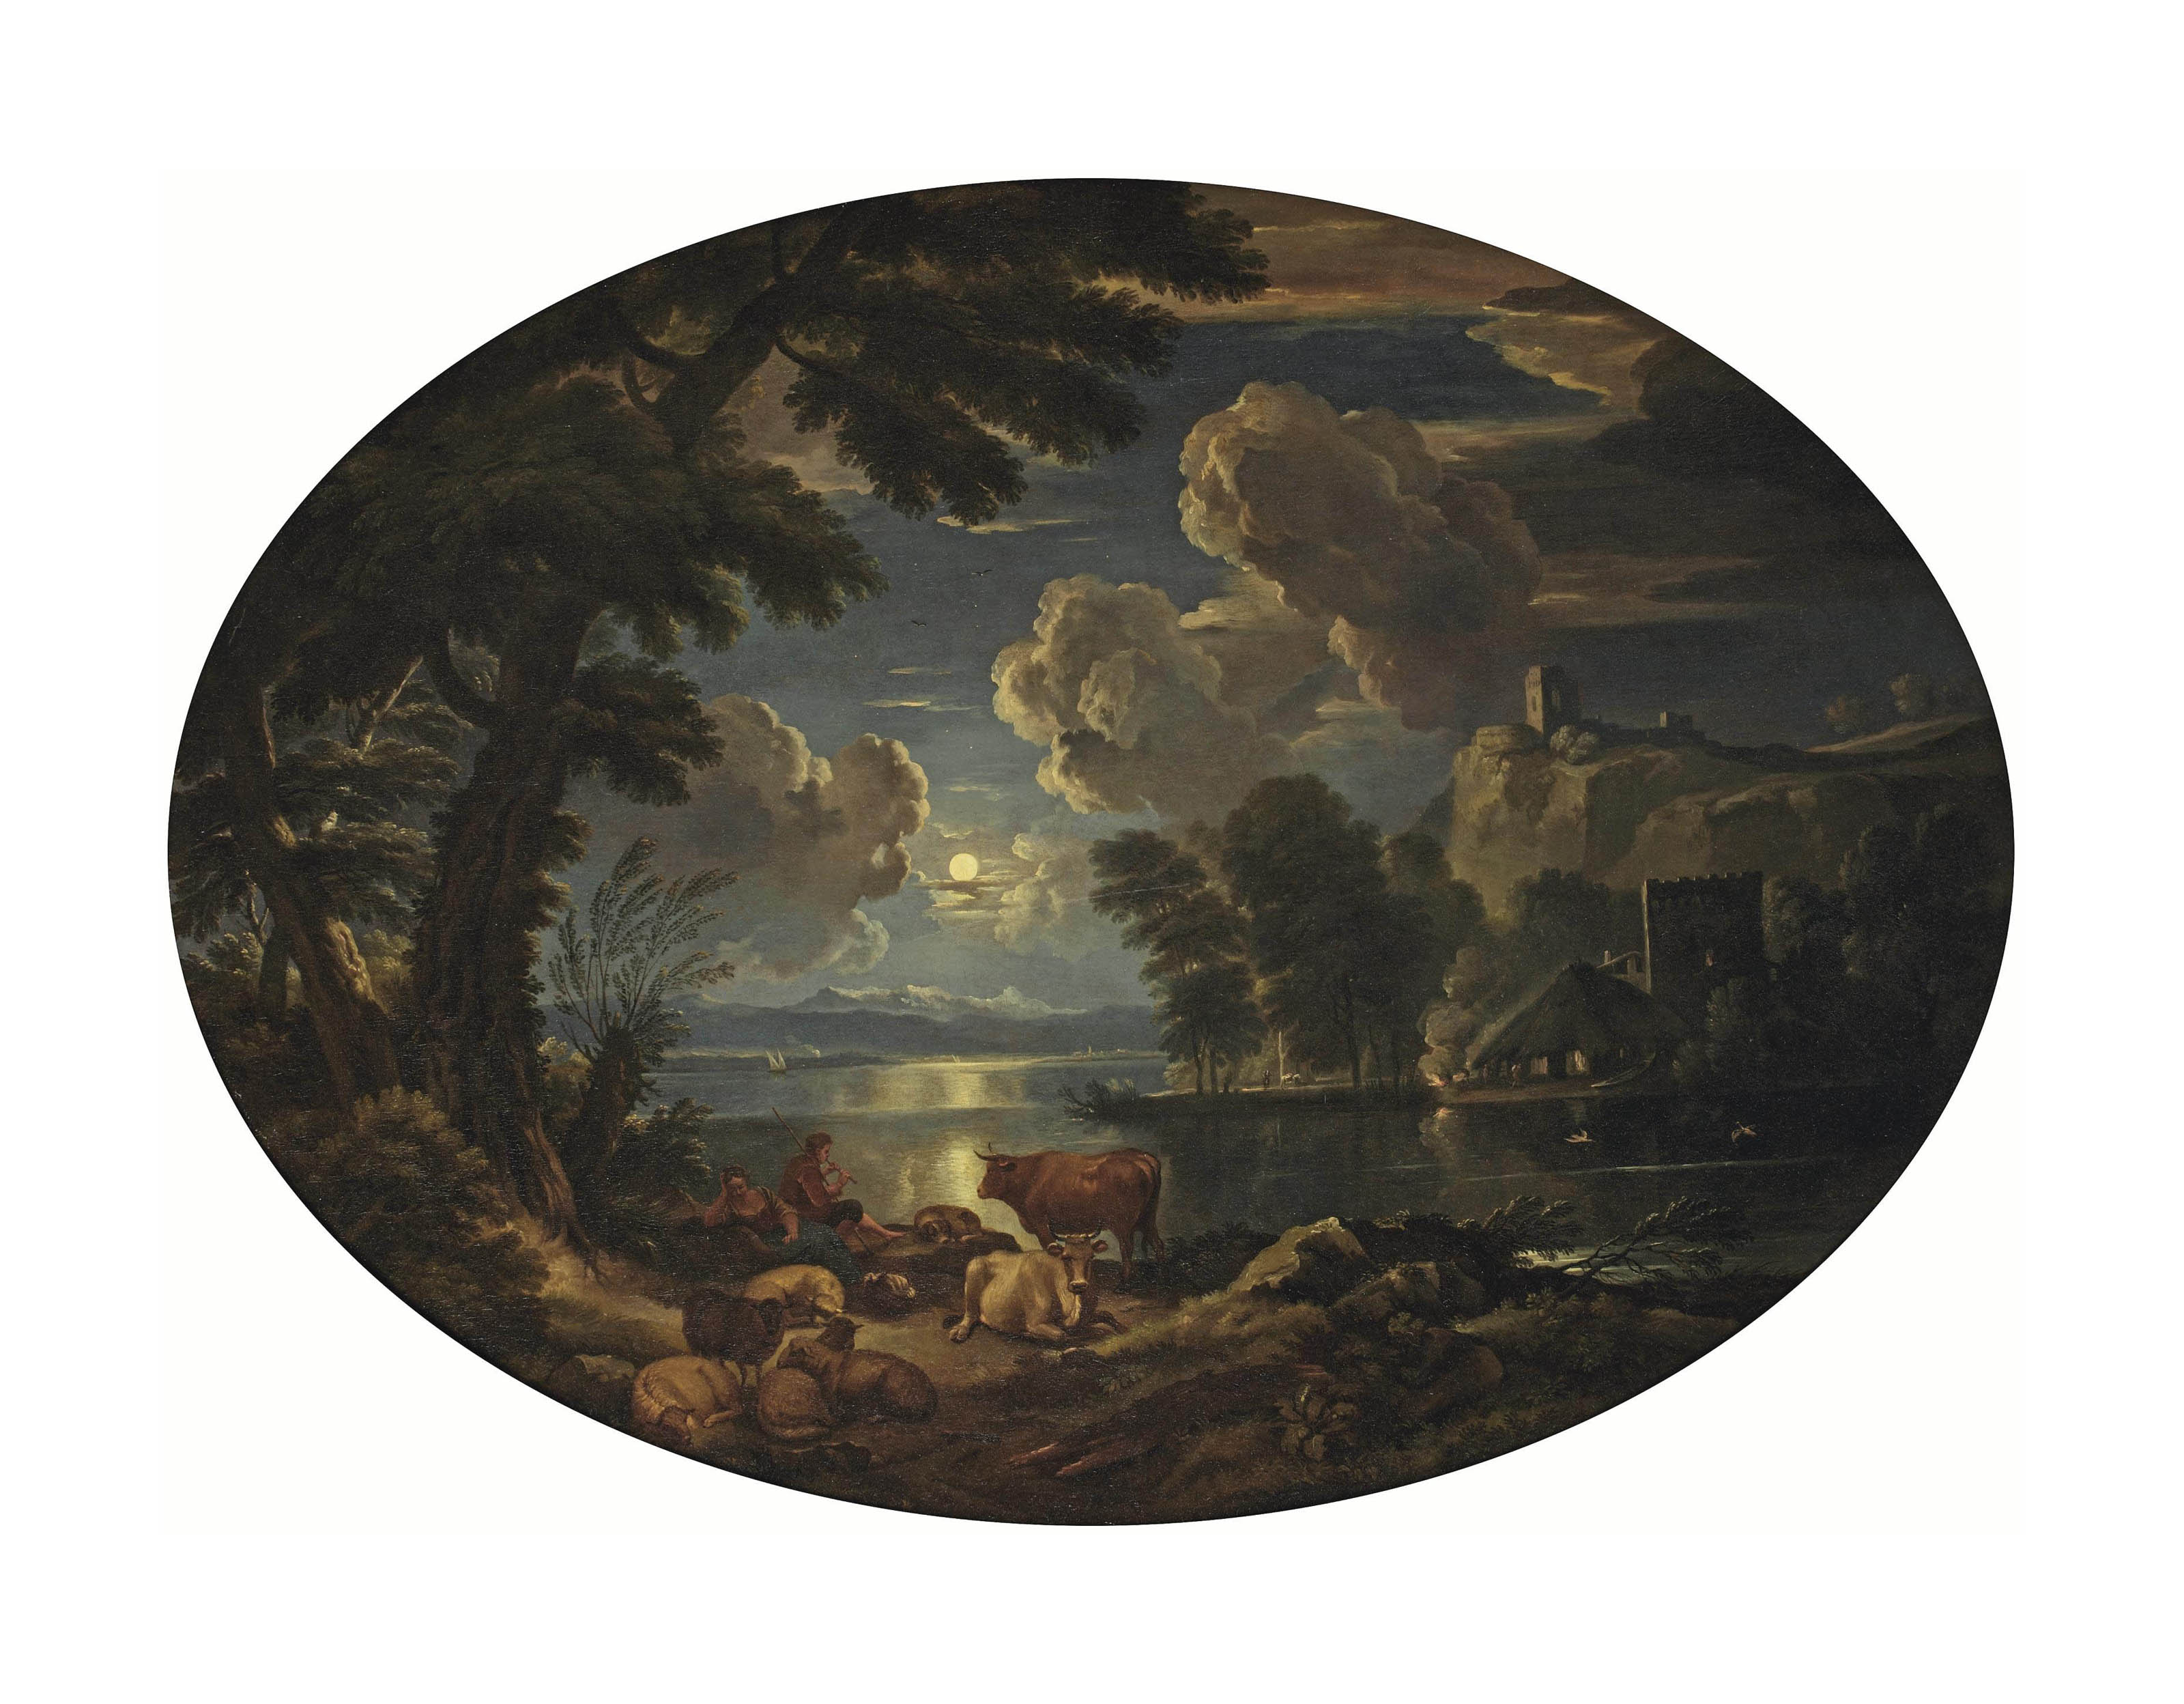 A moonlit river landscape with shepherds by a the river bank